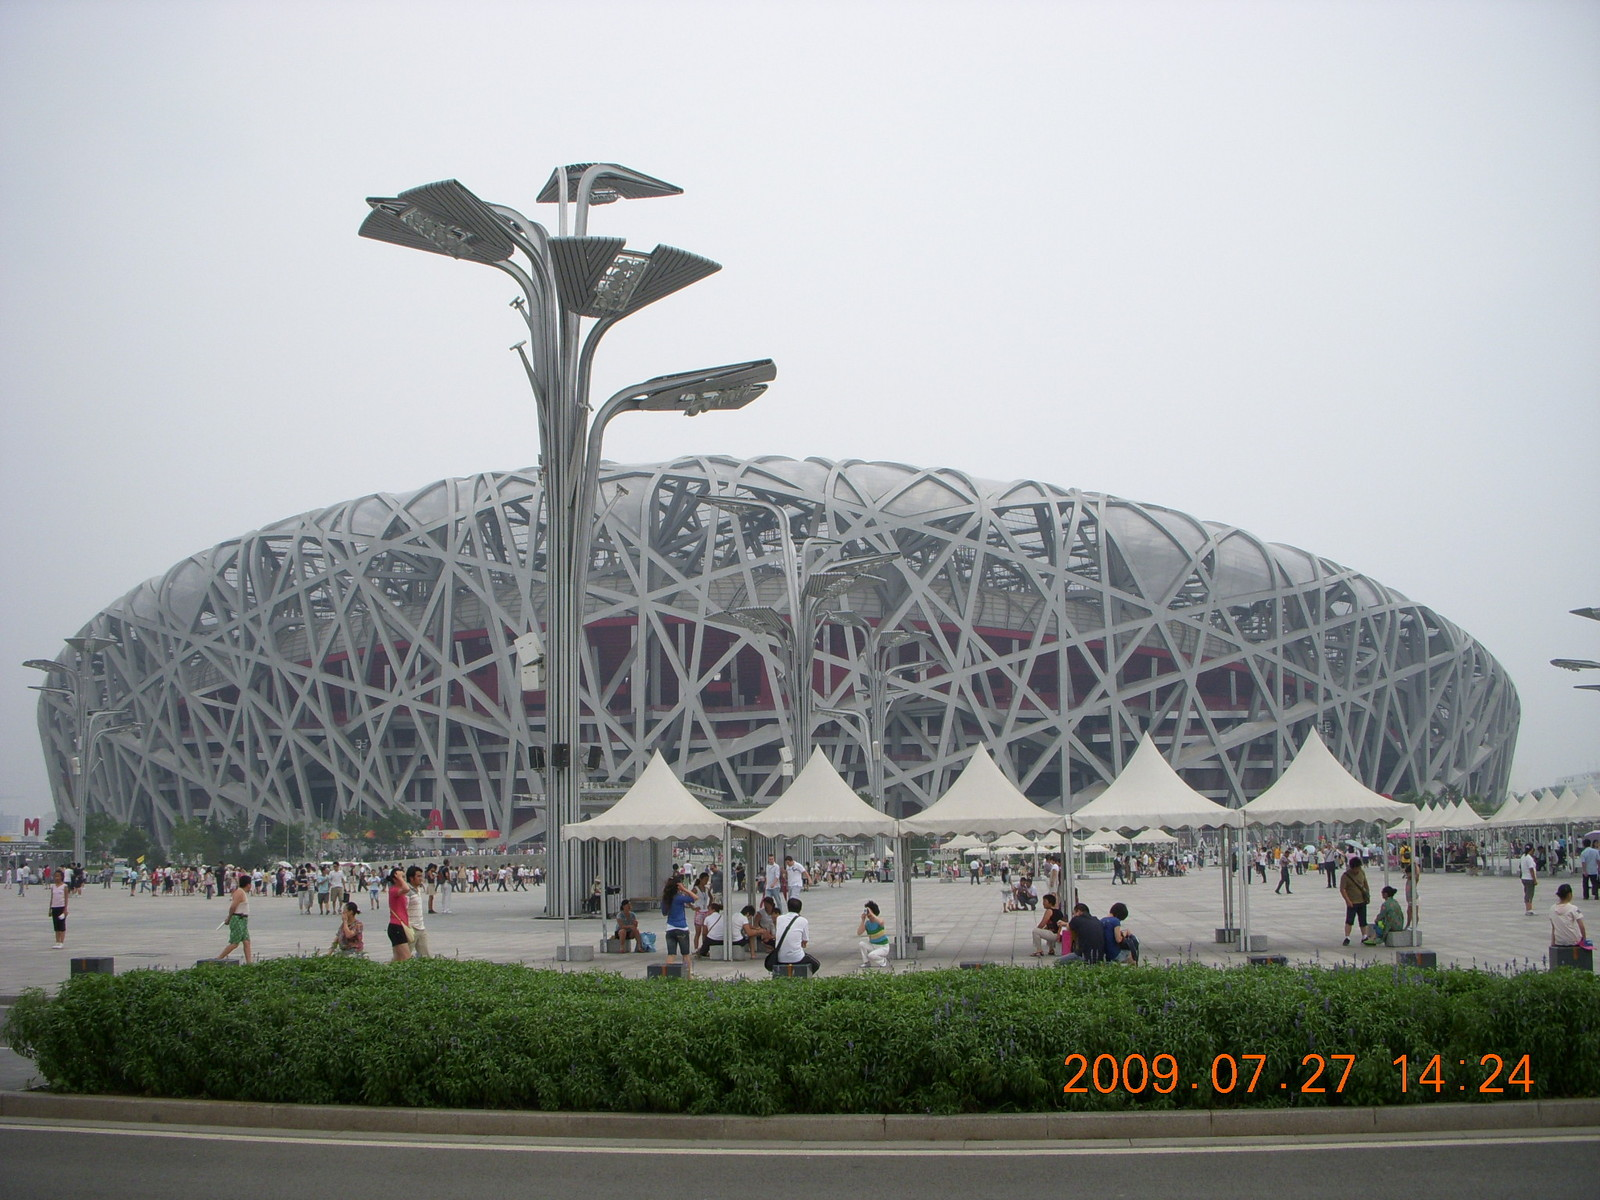 China eclipse - Beijing Olympic Park